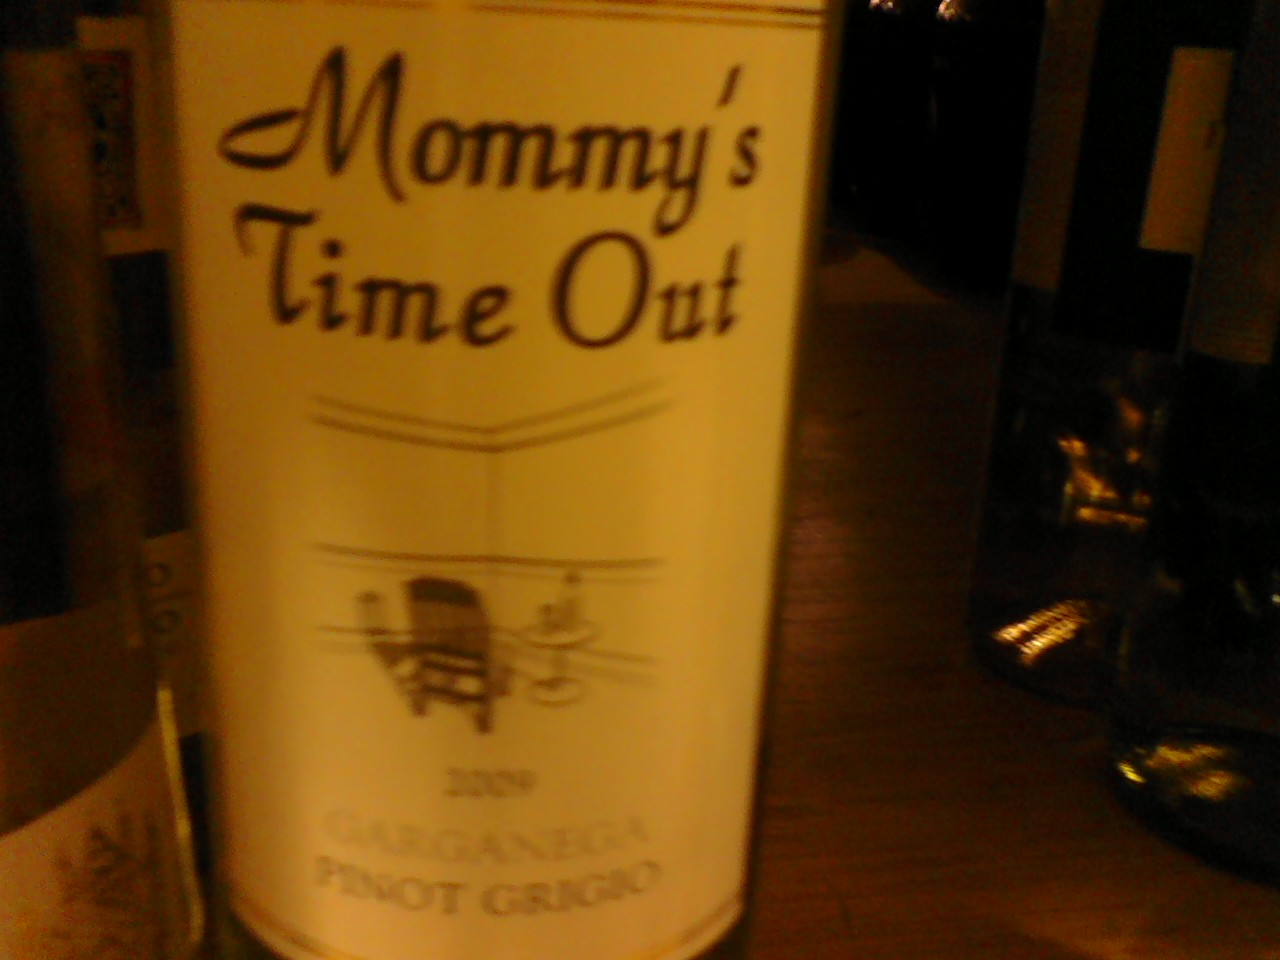 Bizarre And Funny Wine Names Wine And Food Musings